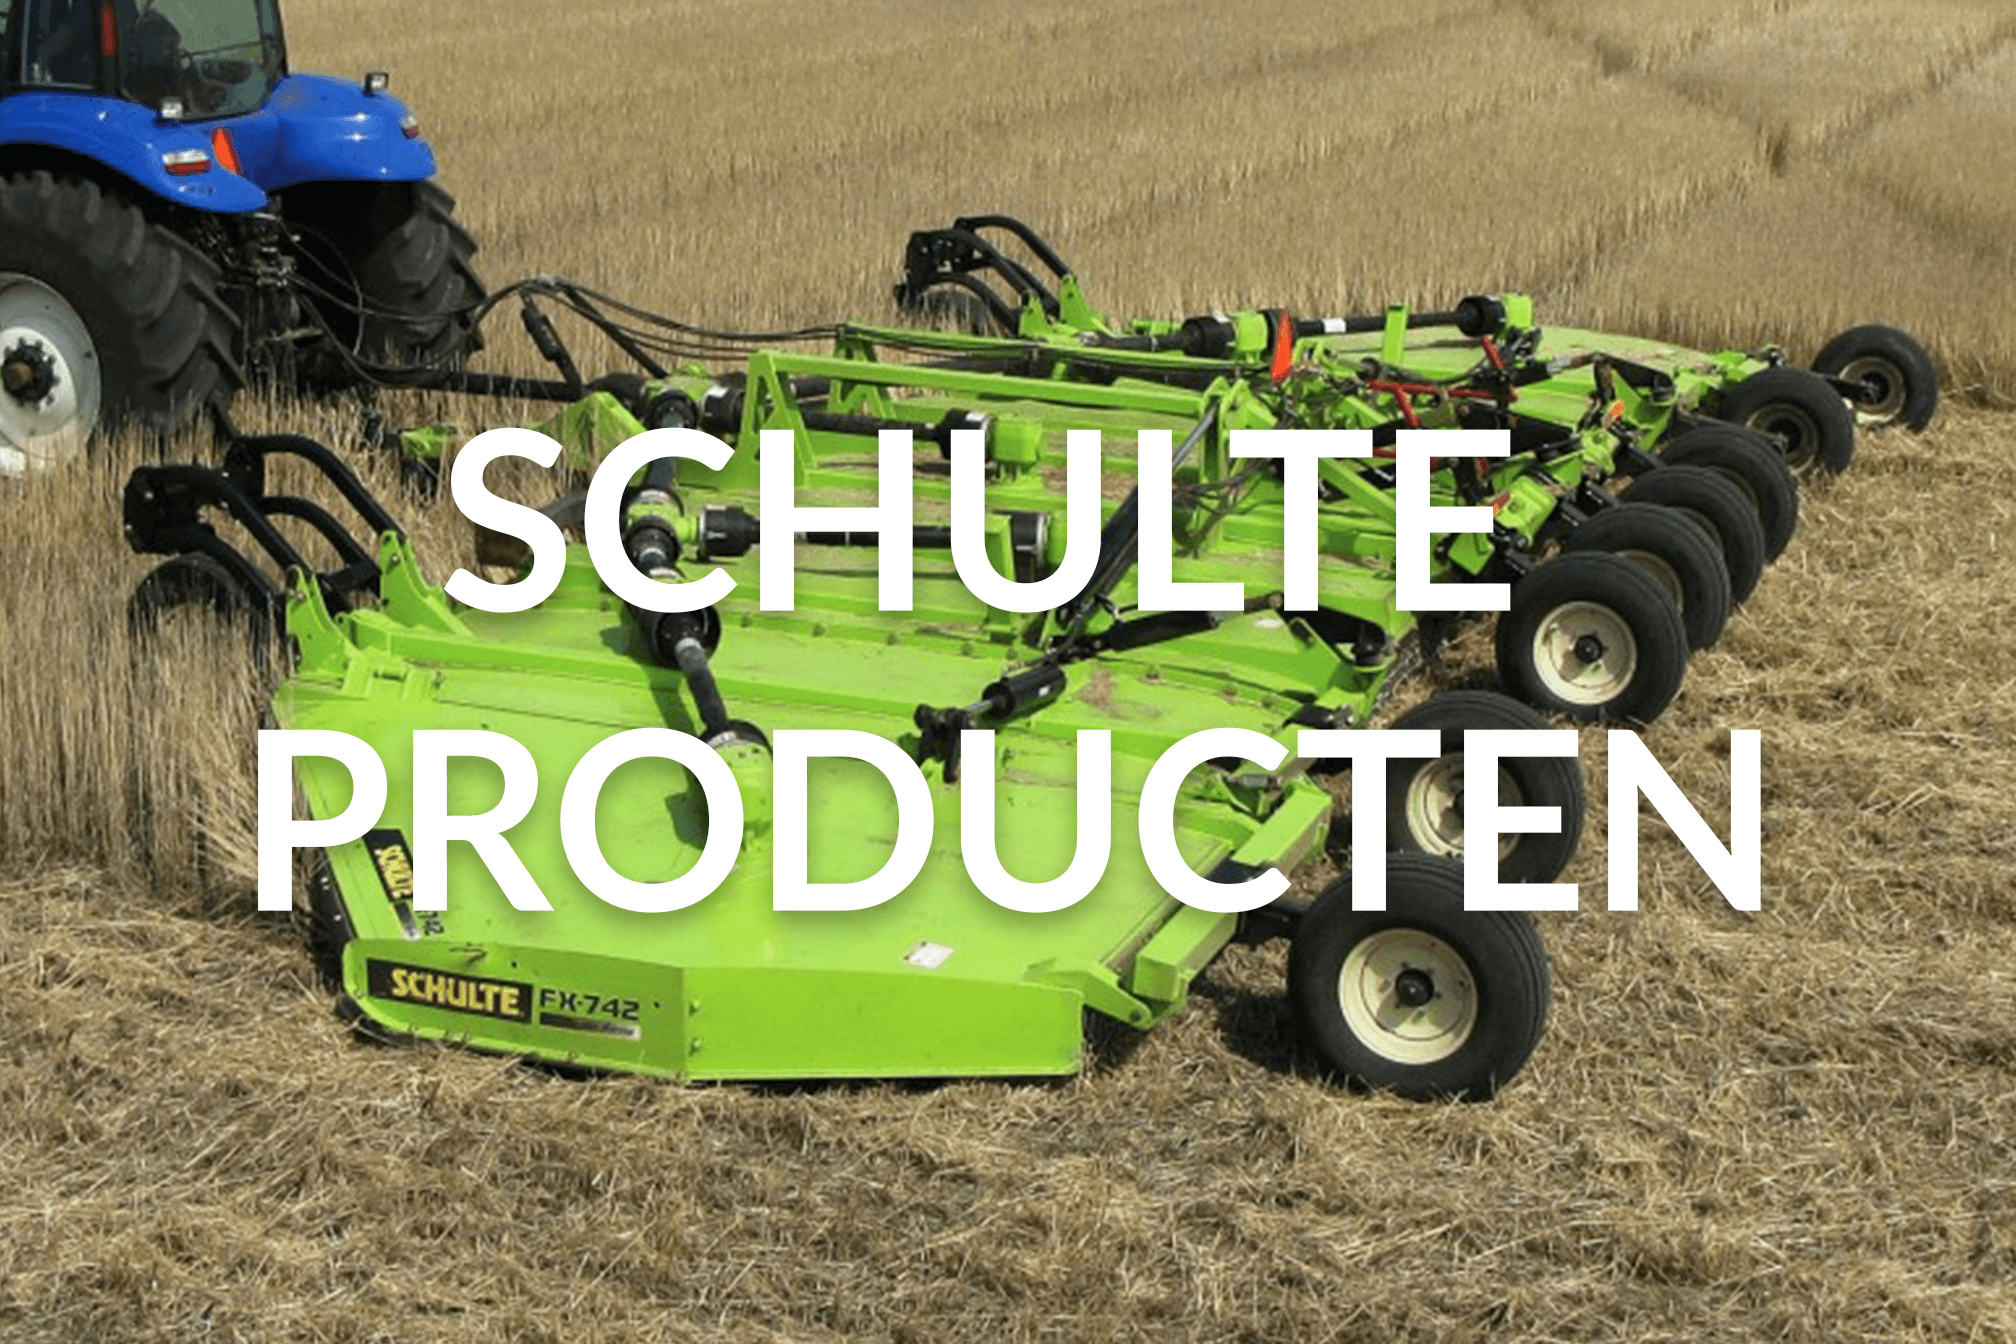 Schulte_PRODUCT_BEELD